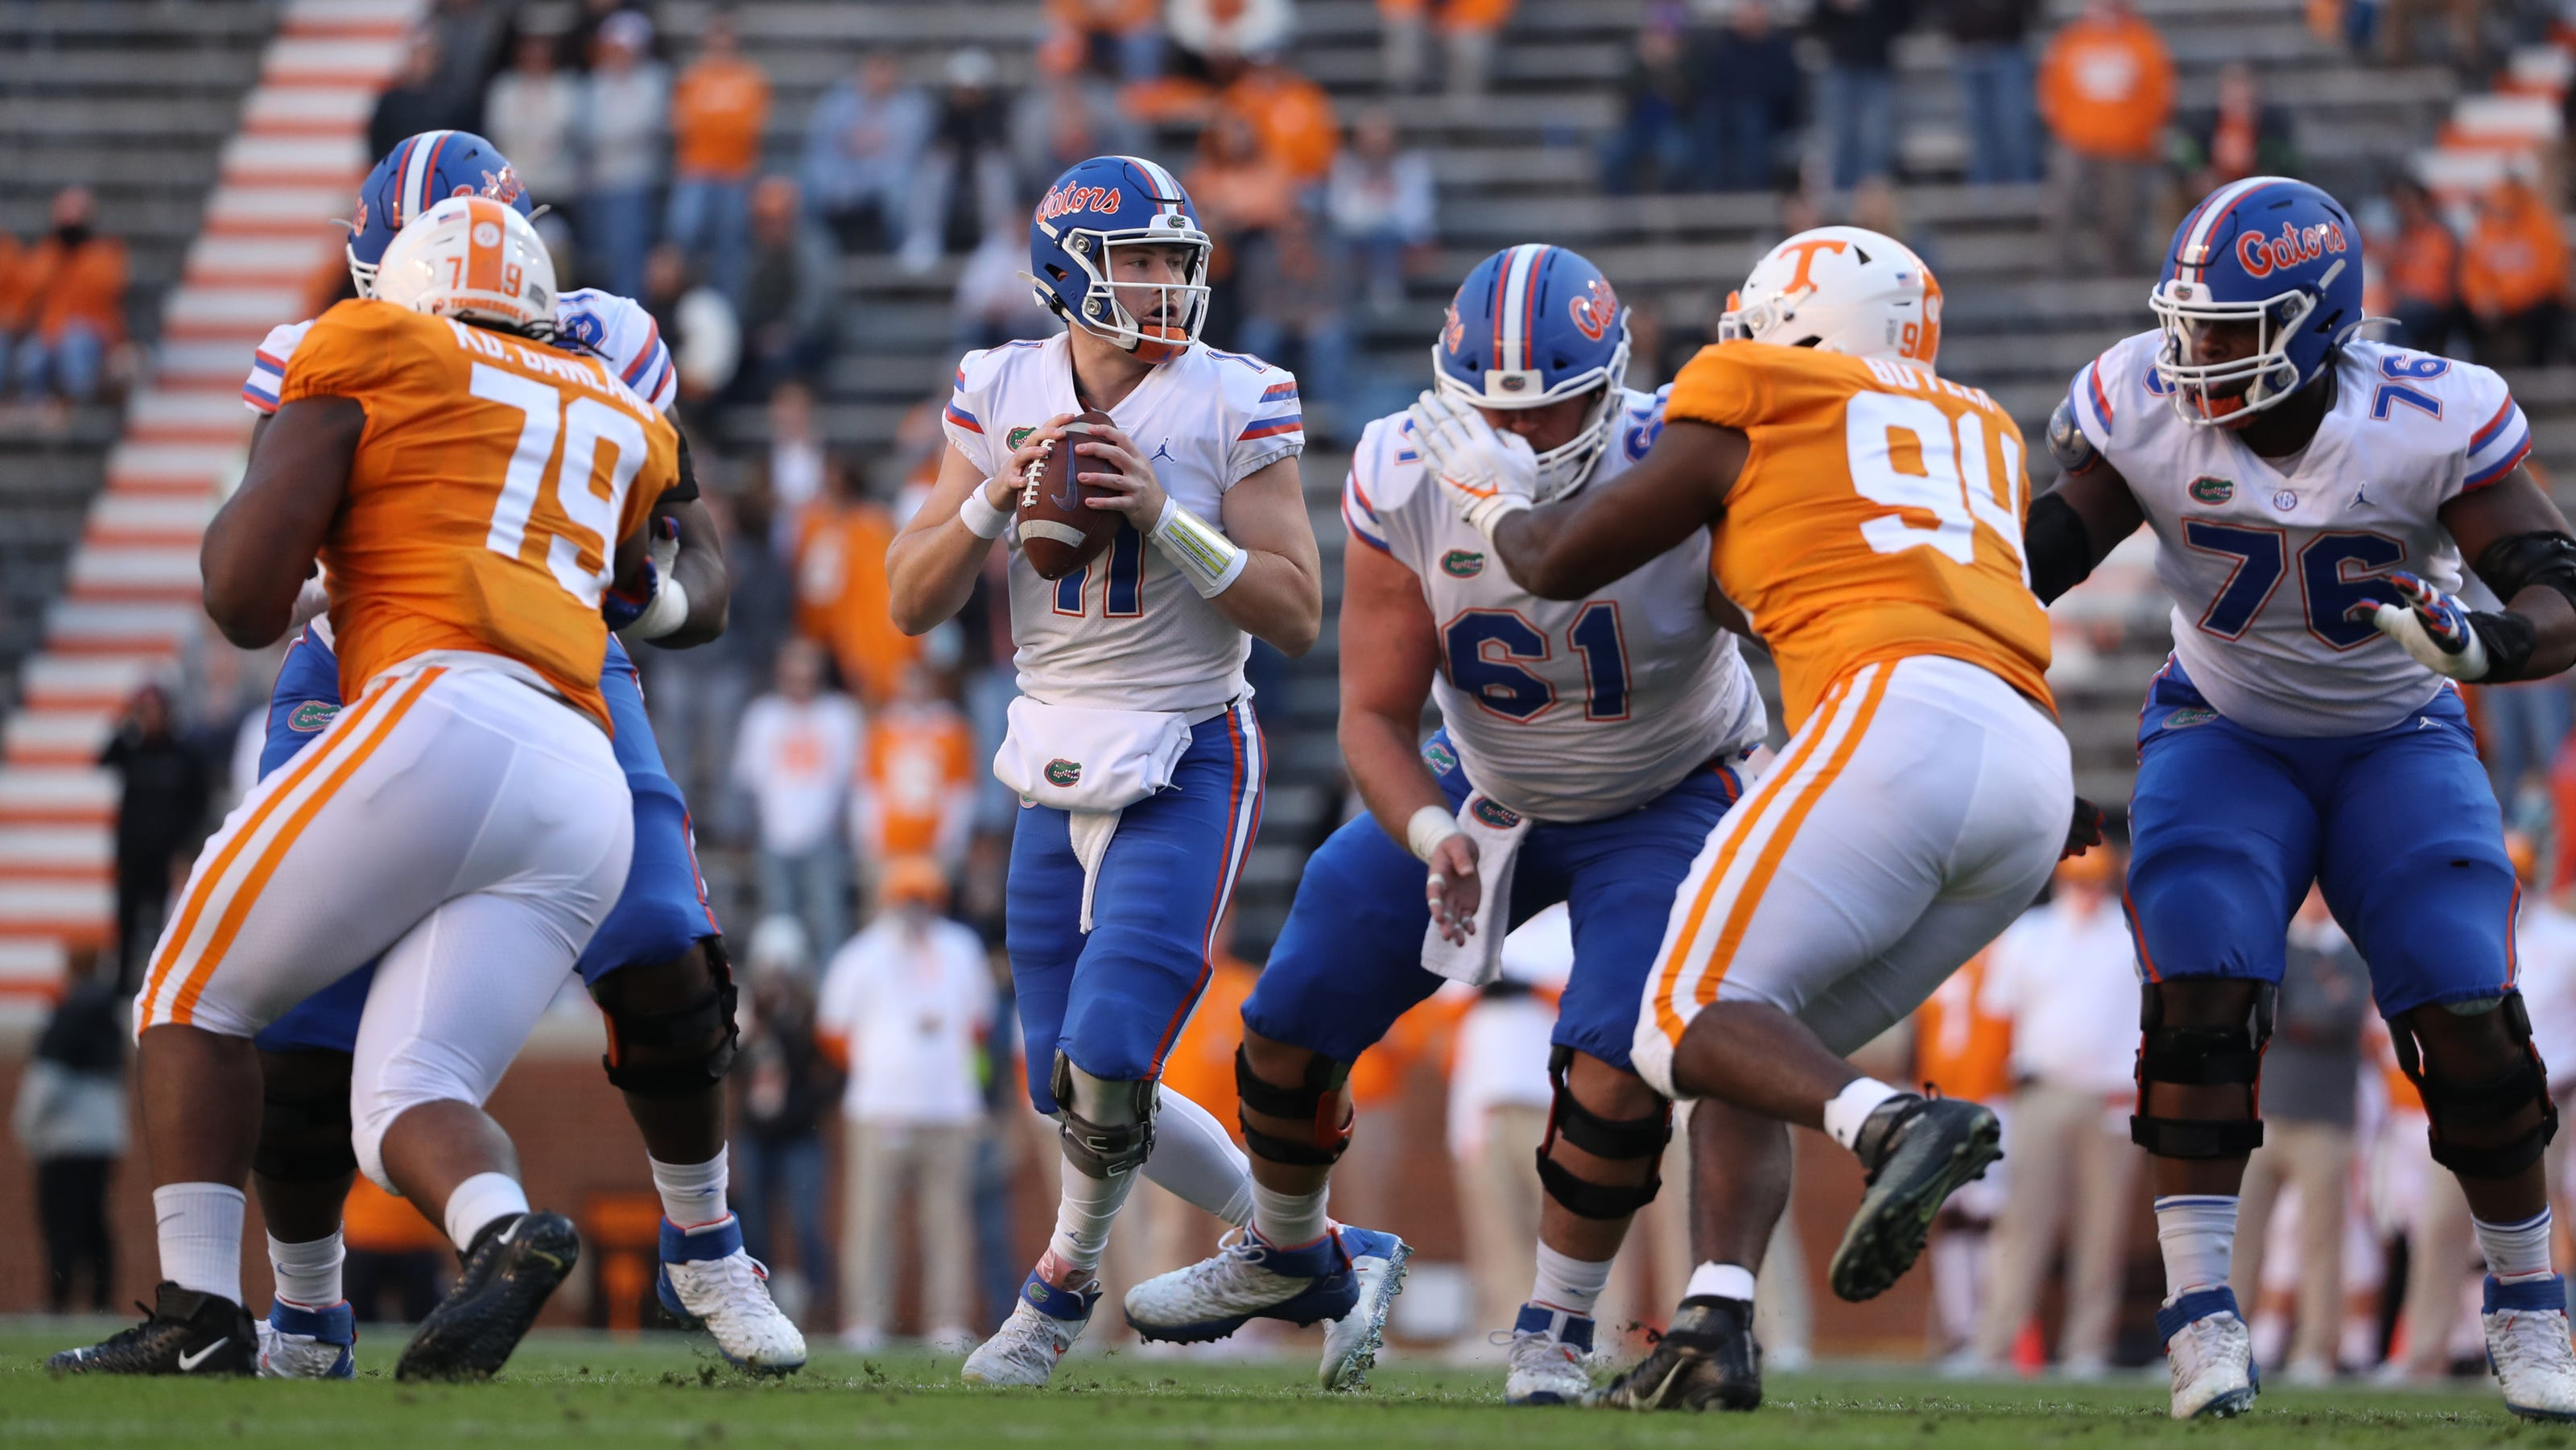 Florida Gators defeat Tennessee Vols, win SEC East: Final